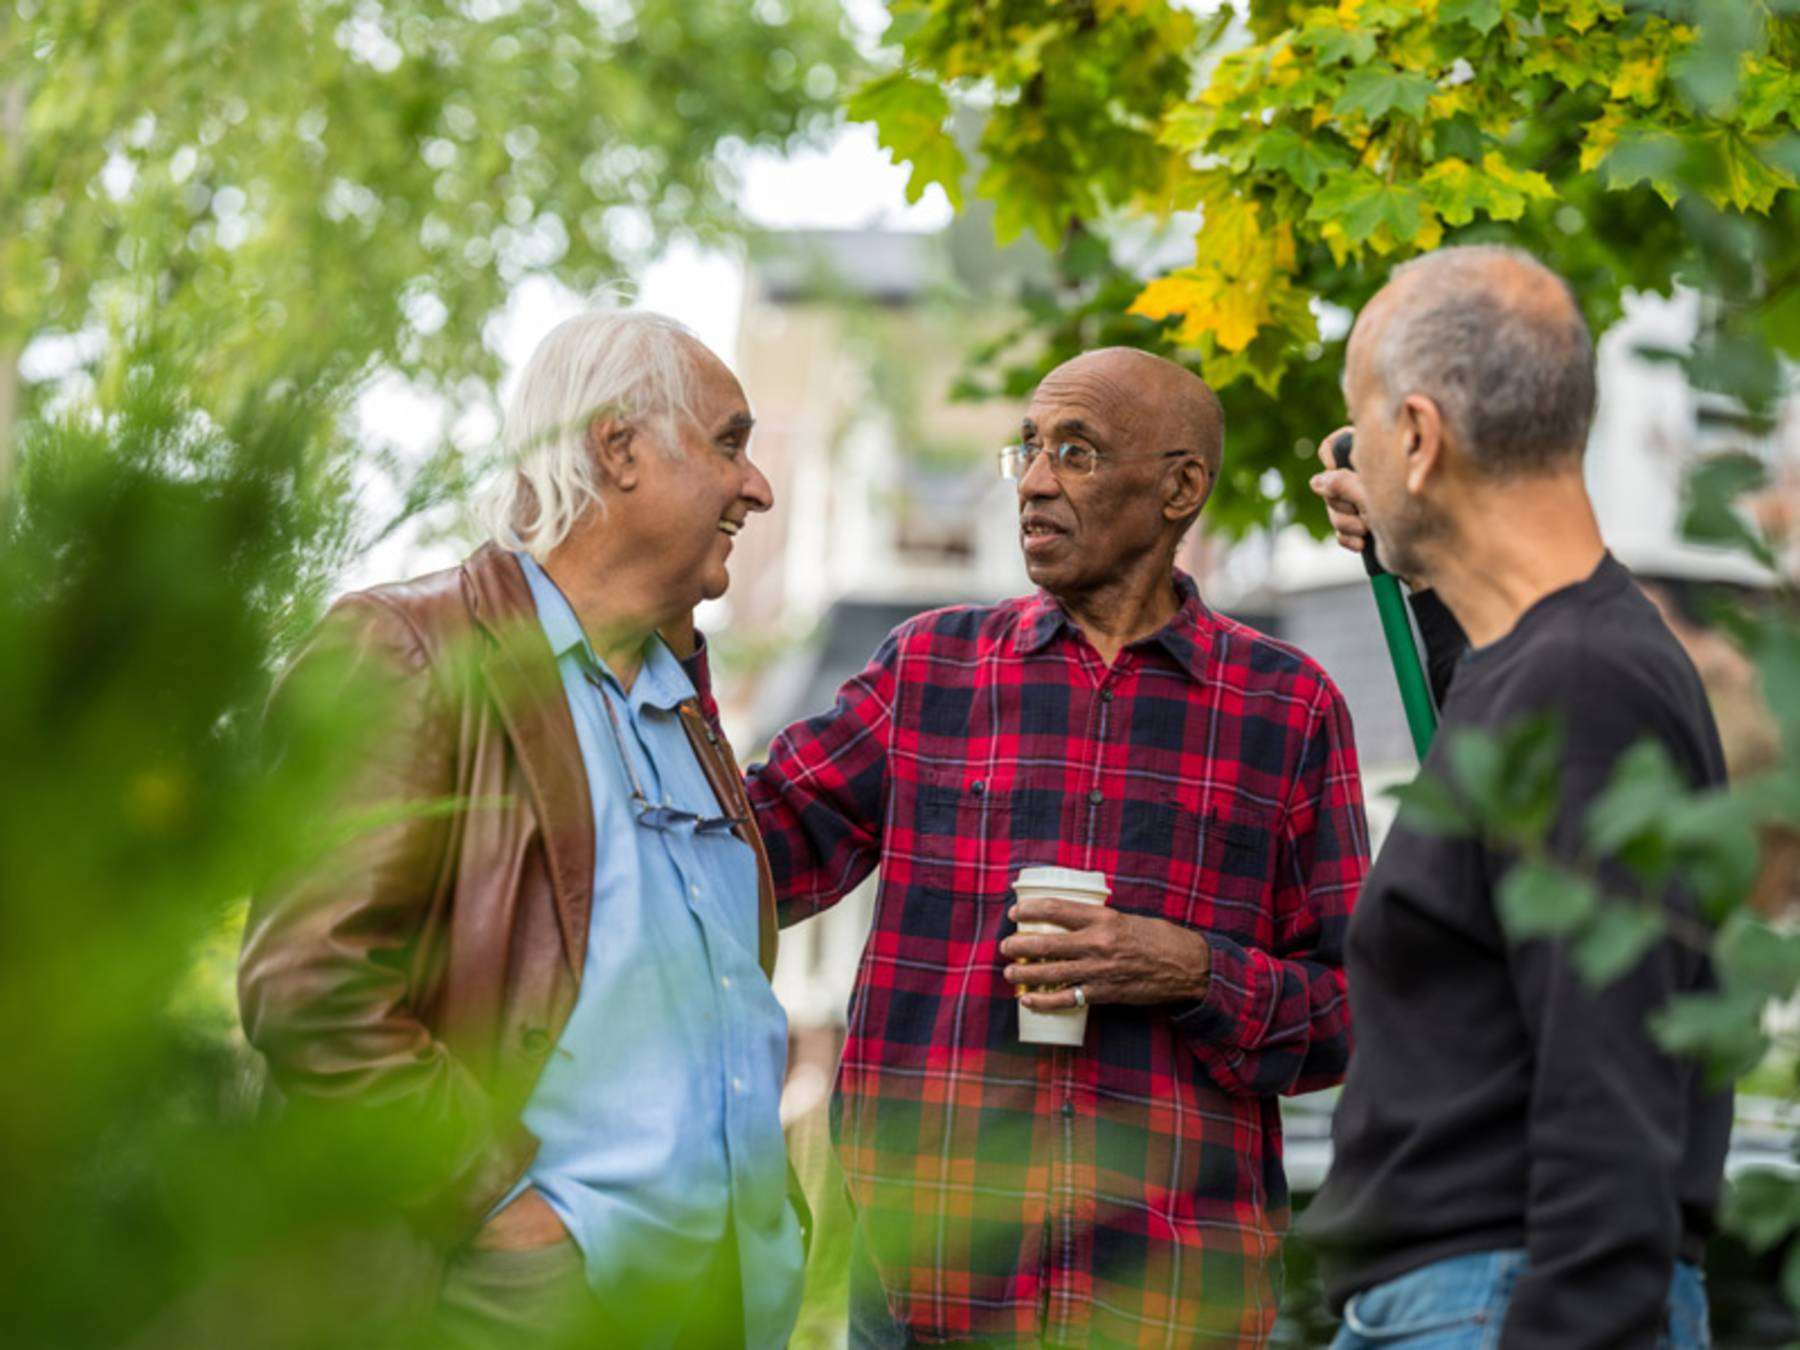 A group of senior men talk while standing outdoors